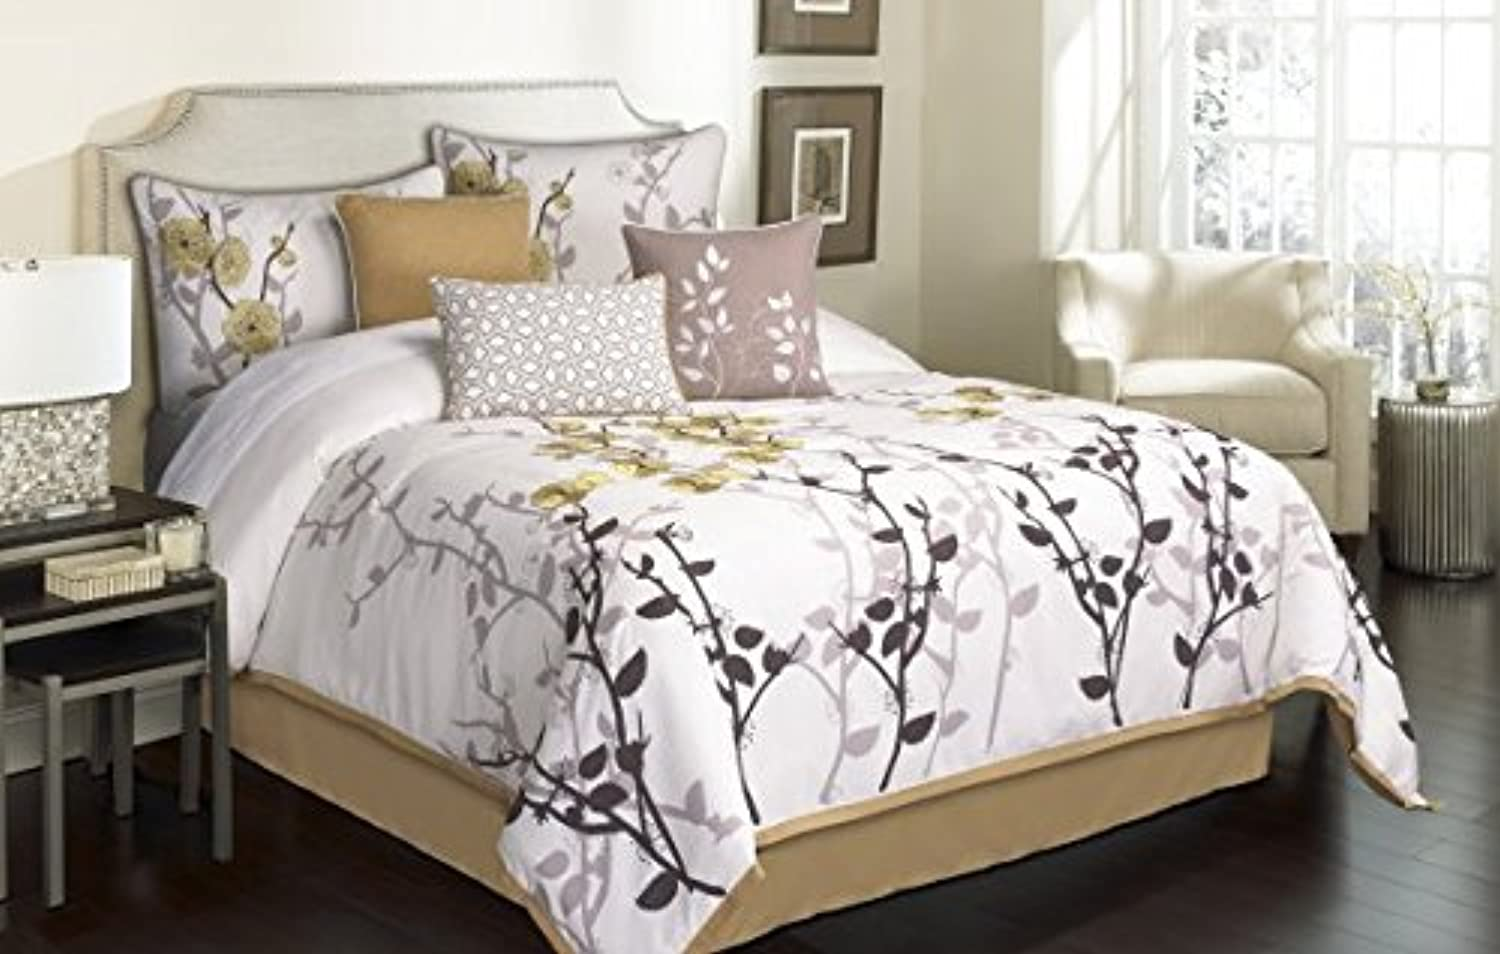 Riverbrook Home 74447 Garnier Comforter Set, Tan Ivory, 7-Piece, King